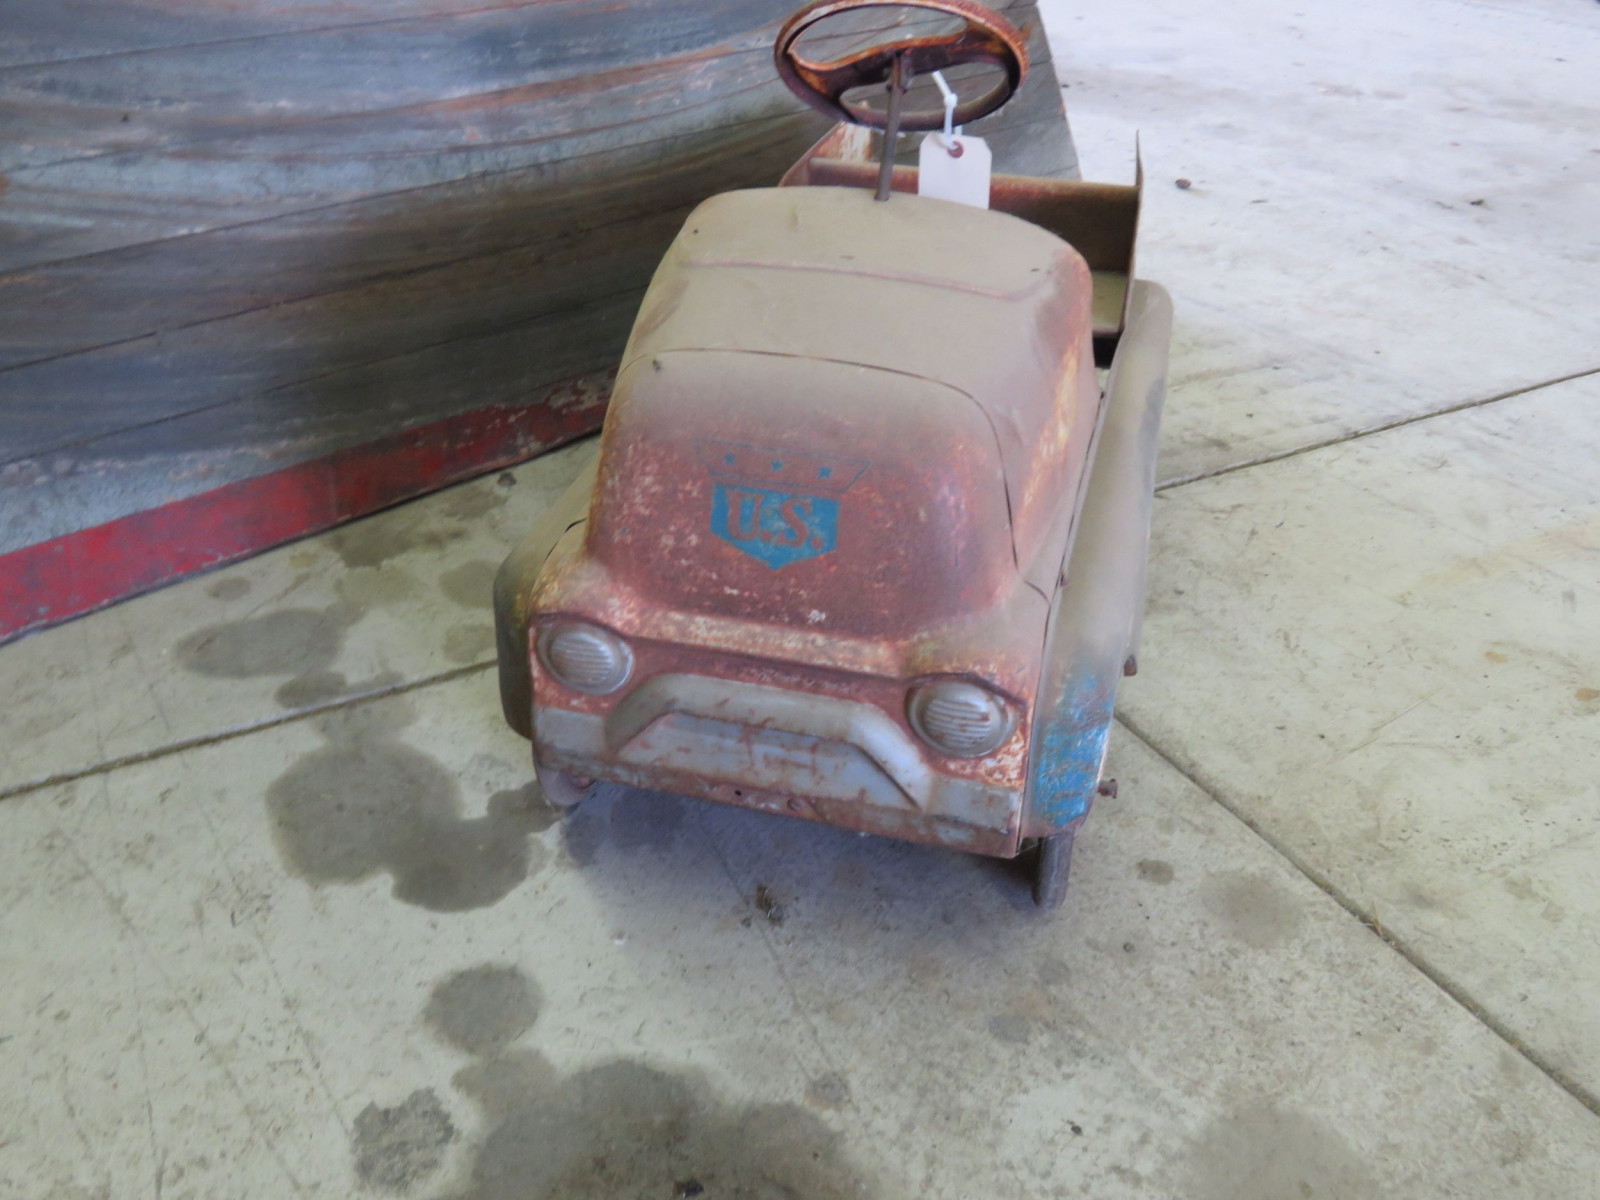 AMF Air Mail Truck Pedal Car for Restore - Image 2